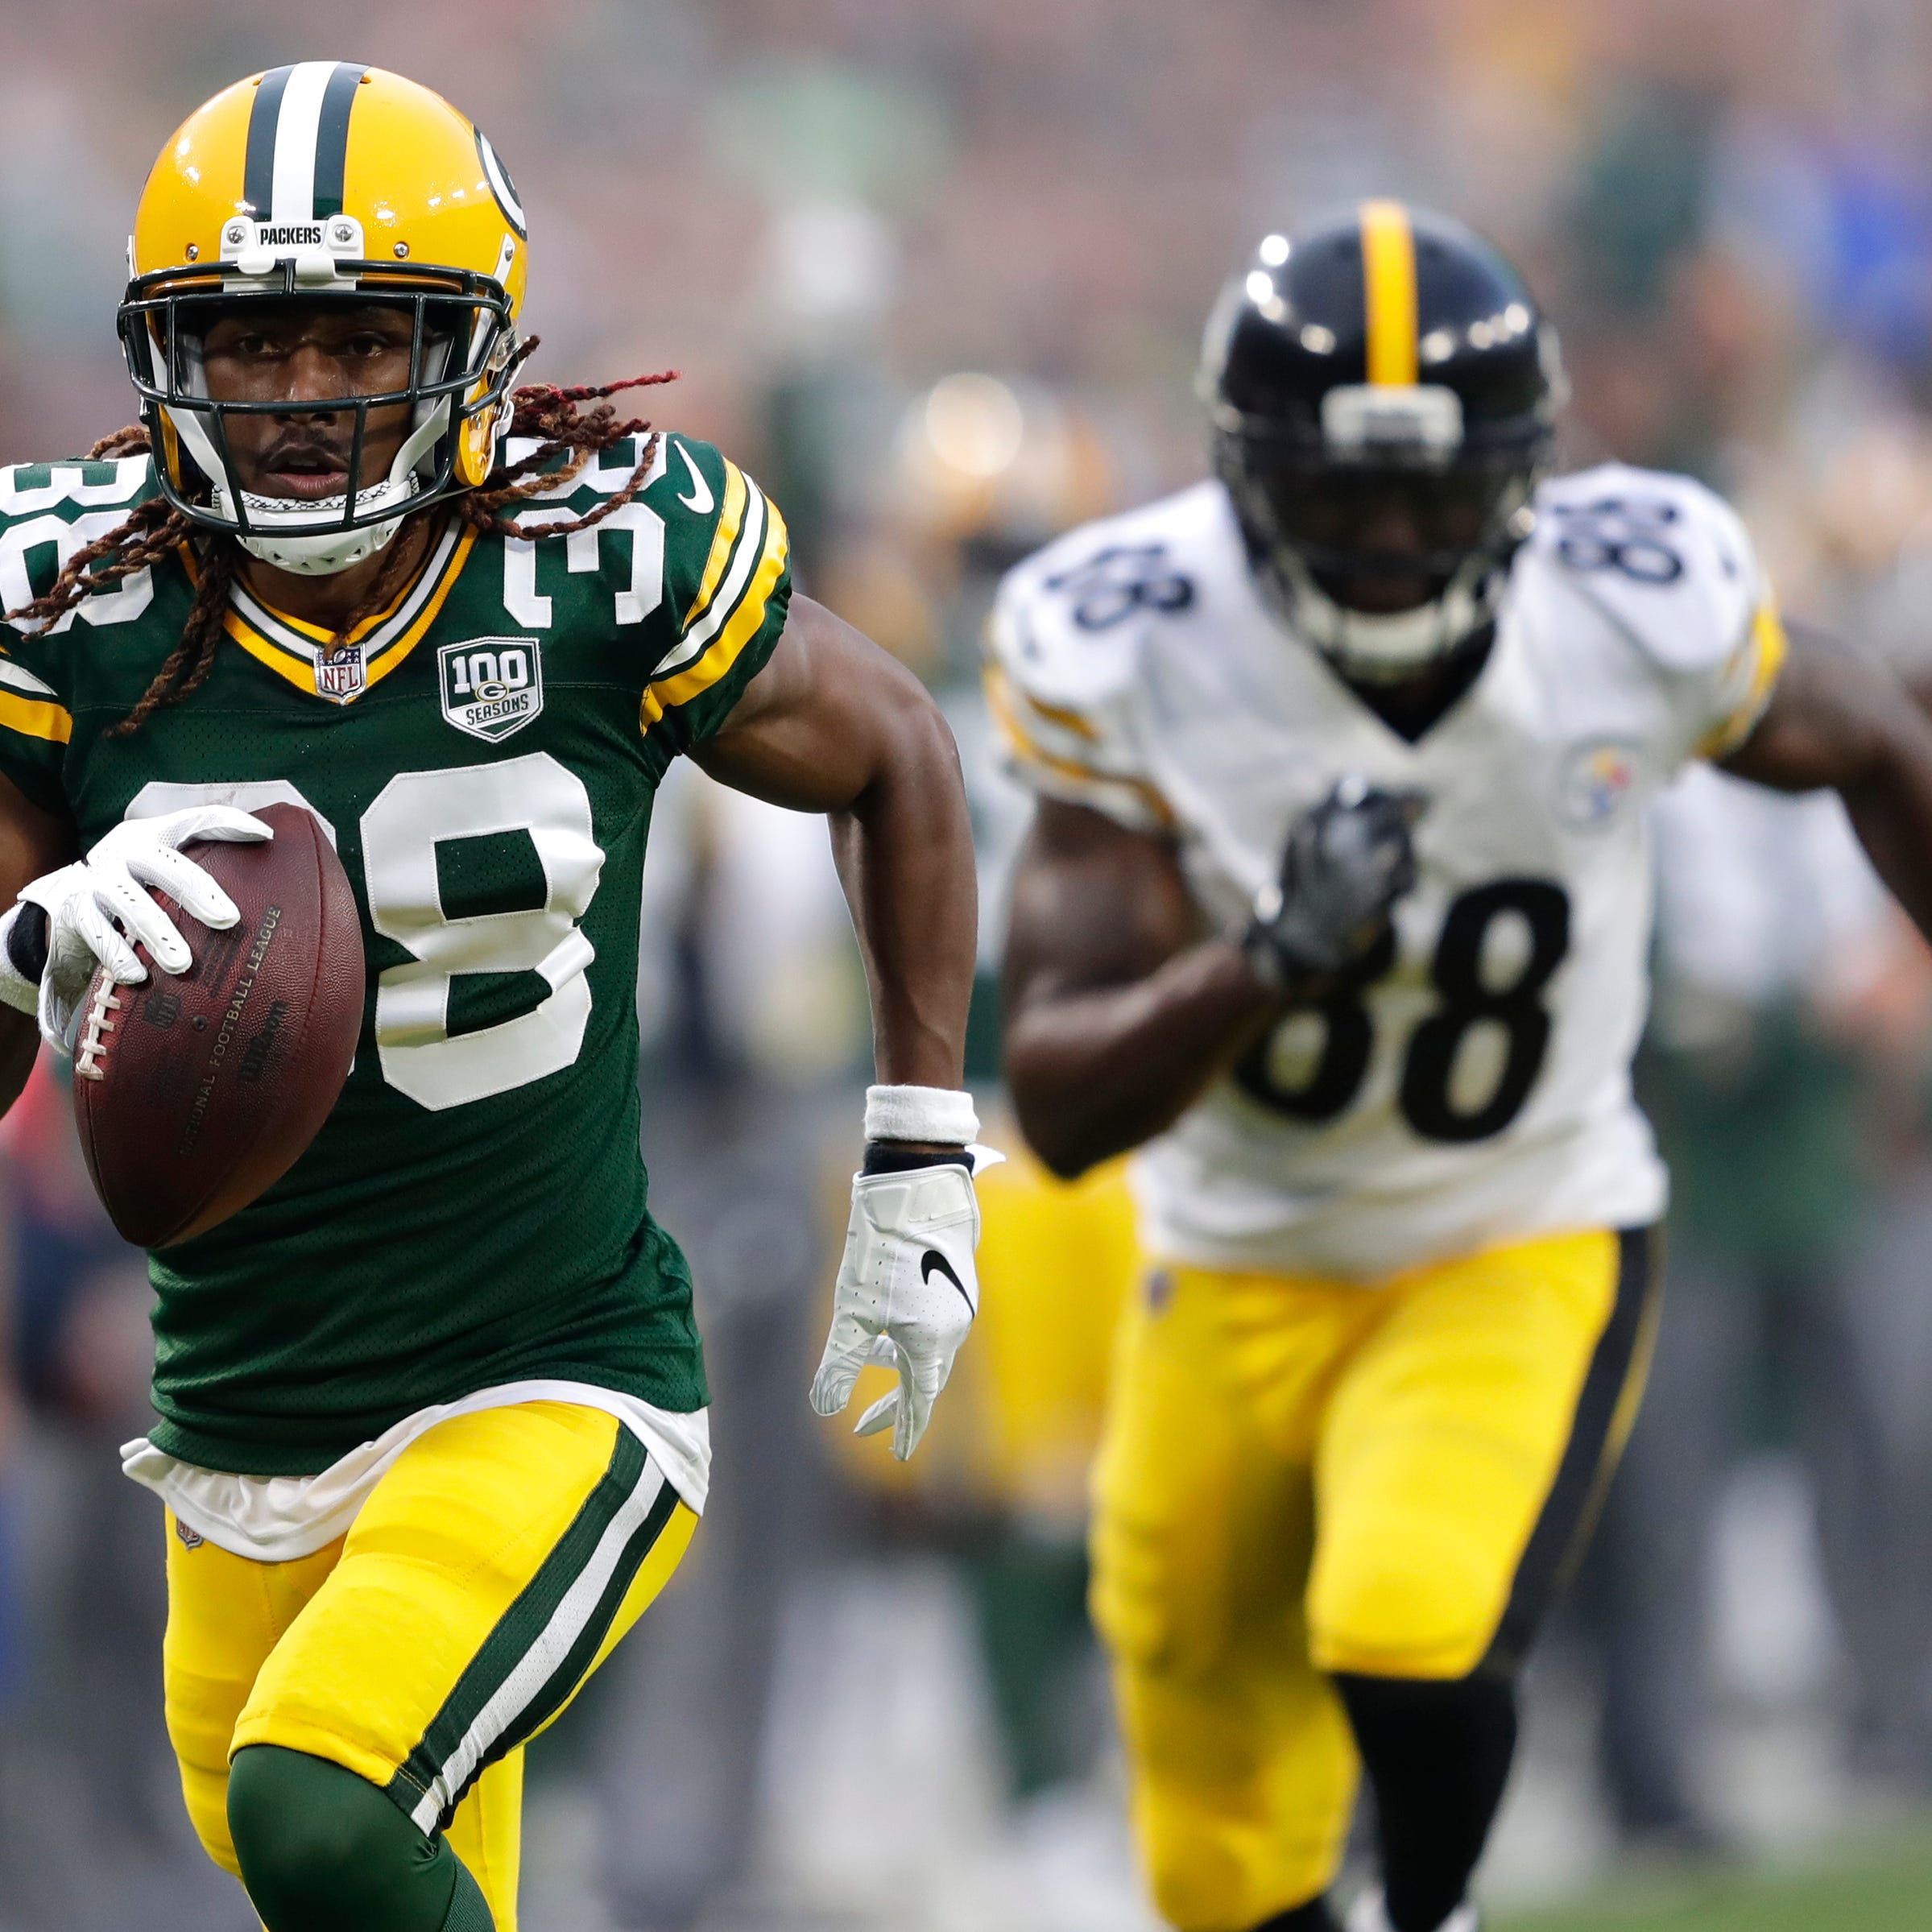 Packers notes: Defense on hunt for turnovers that 'can swing seasons'